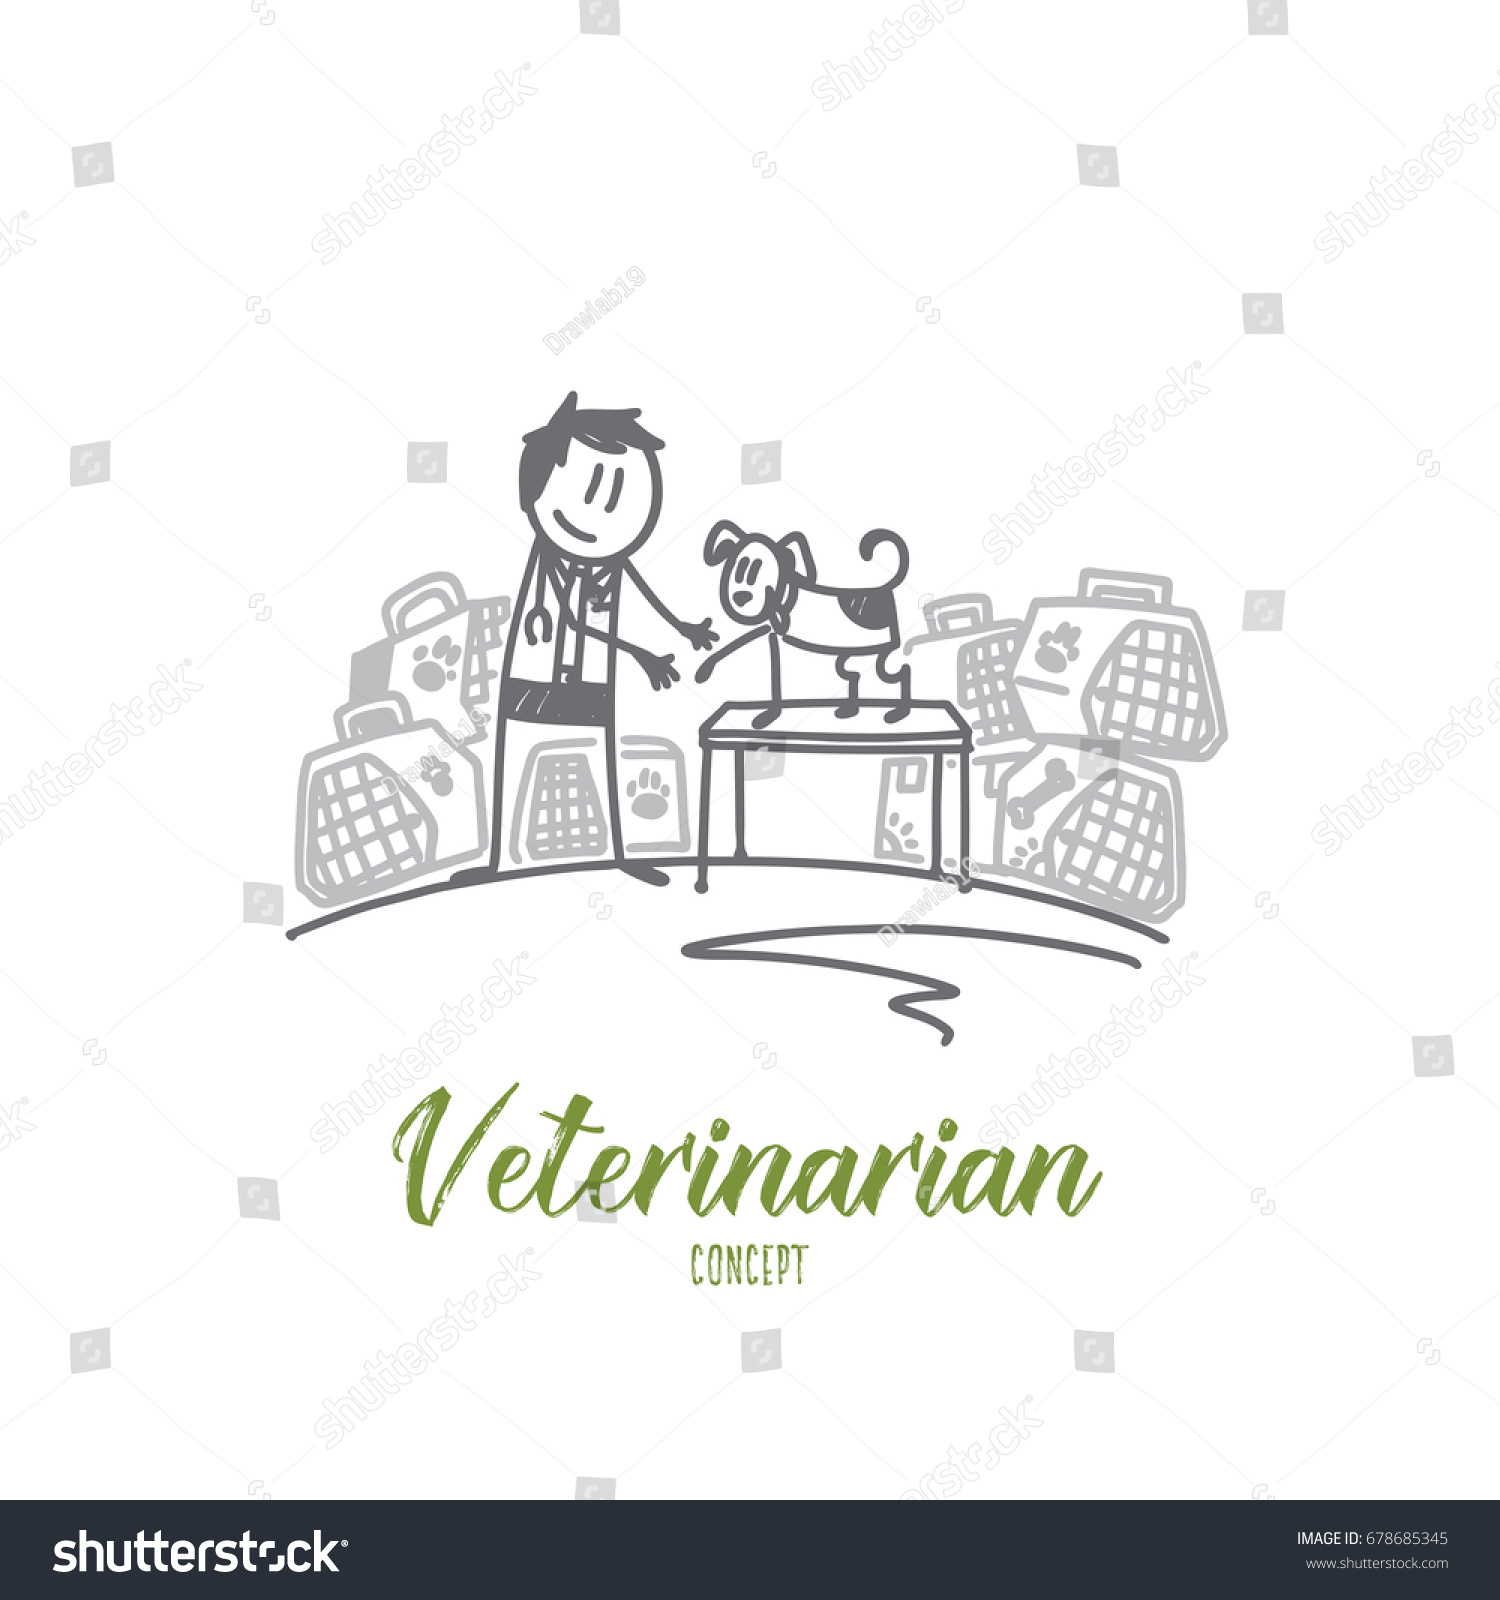 veterinarian concept hand drawn veterinarian uniform stock vector